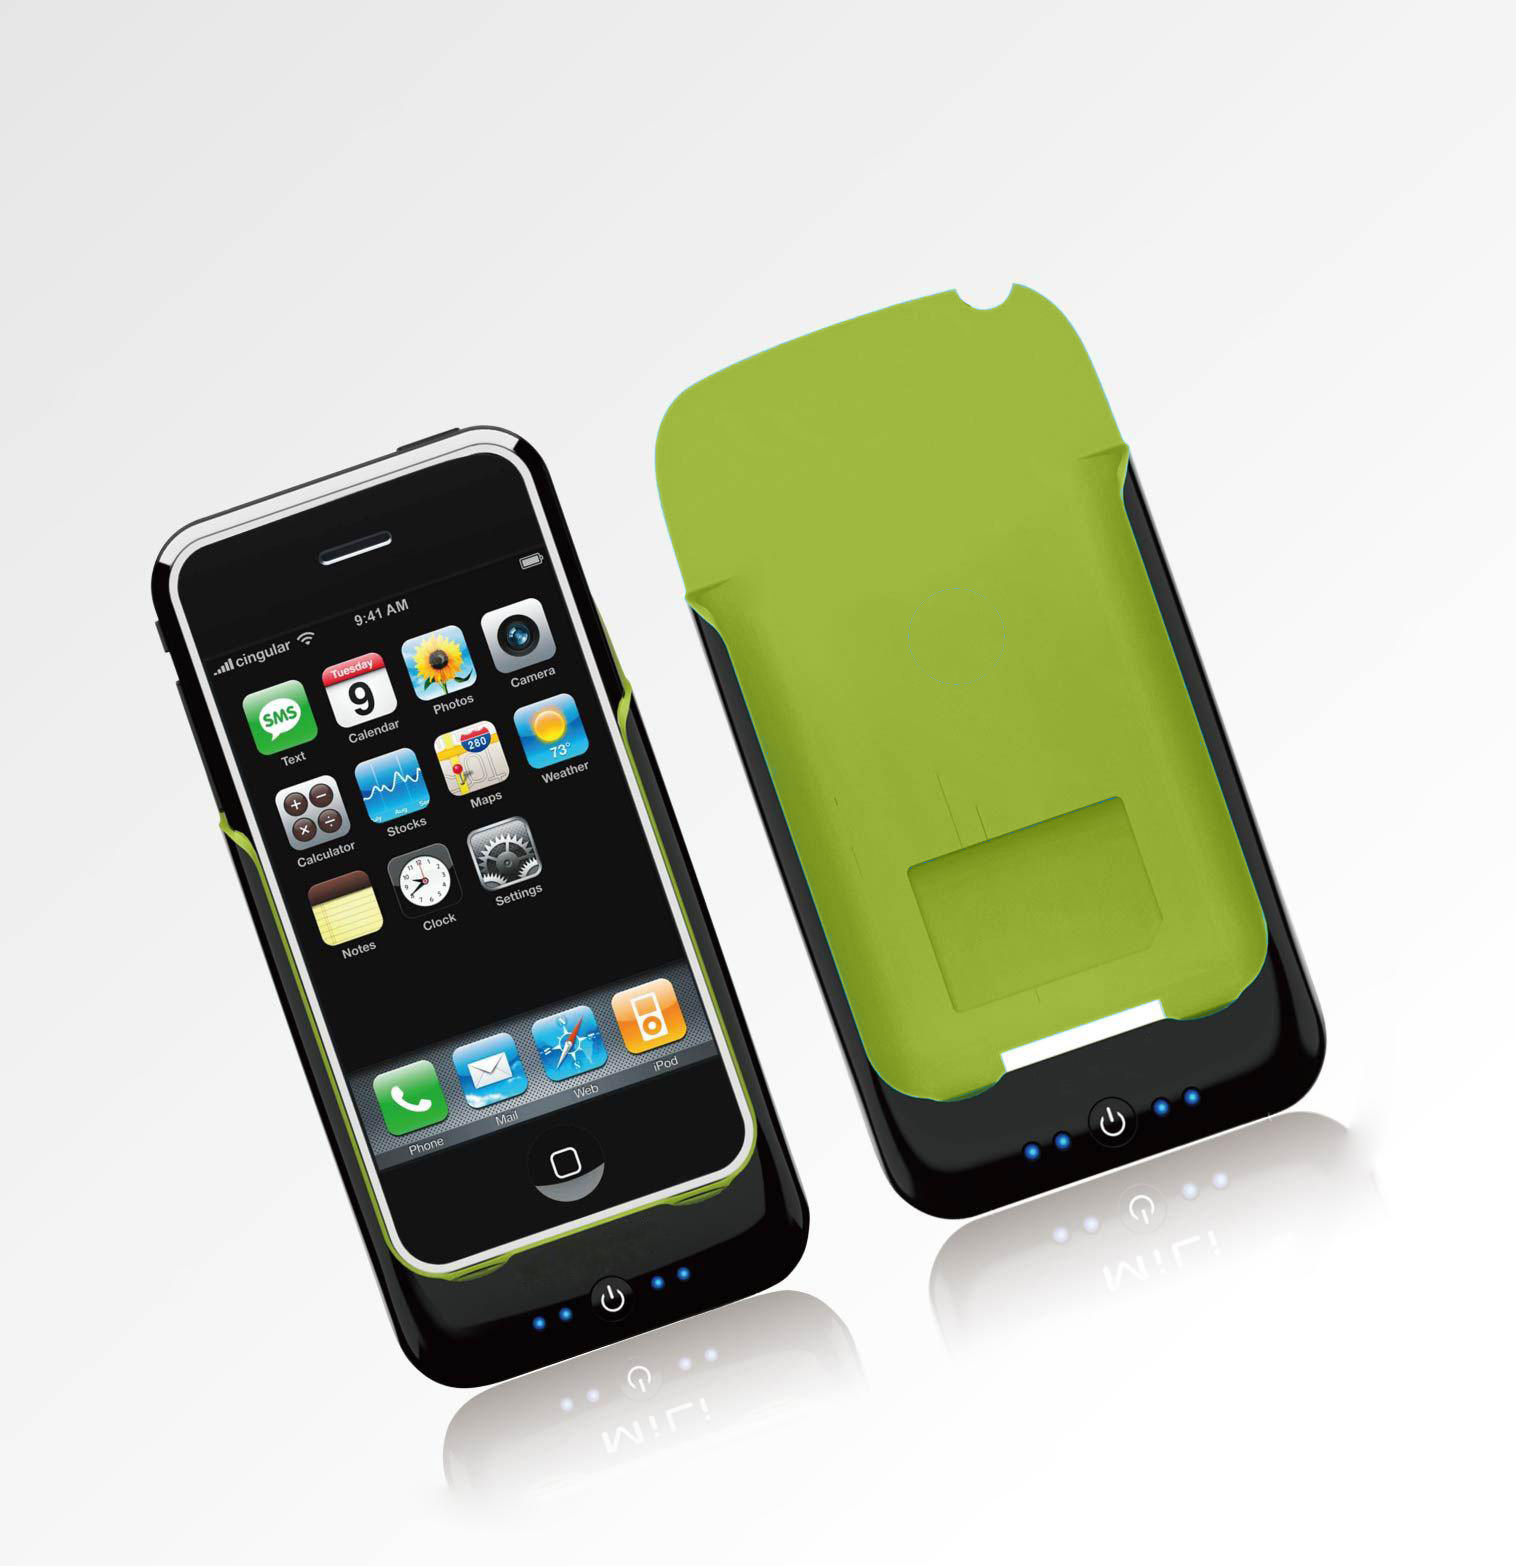 iPhone Power Pack case+external battery for 3G, 3GS Black Green